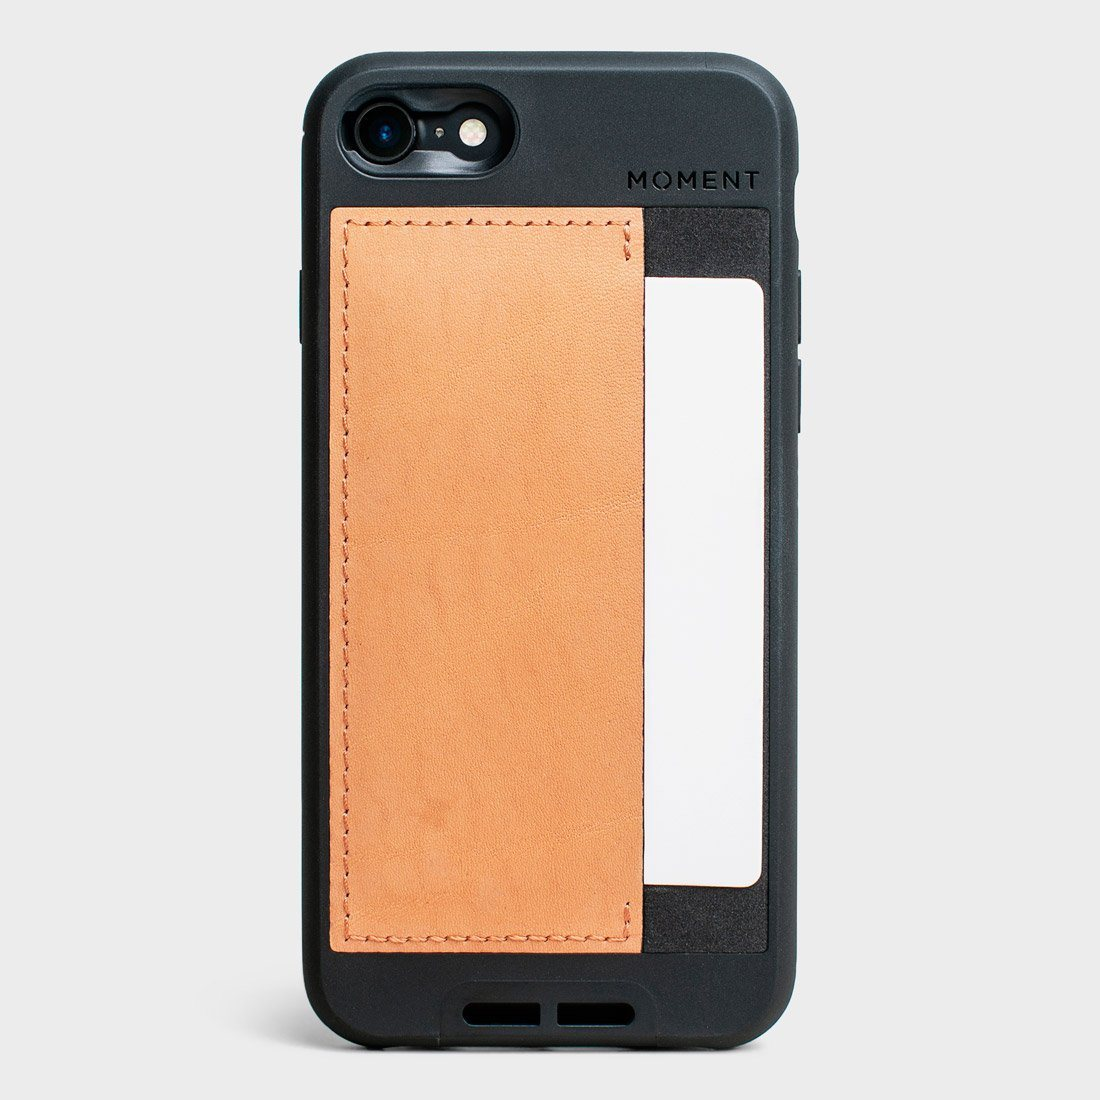 Moment Wallet Photo Case - iPhone 8/7 - Natural Leather